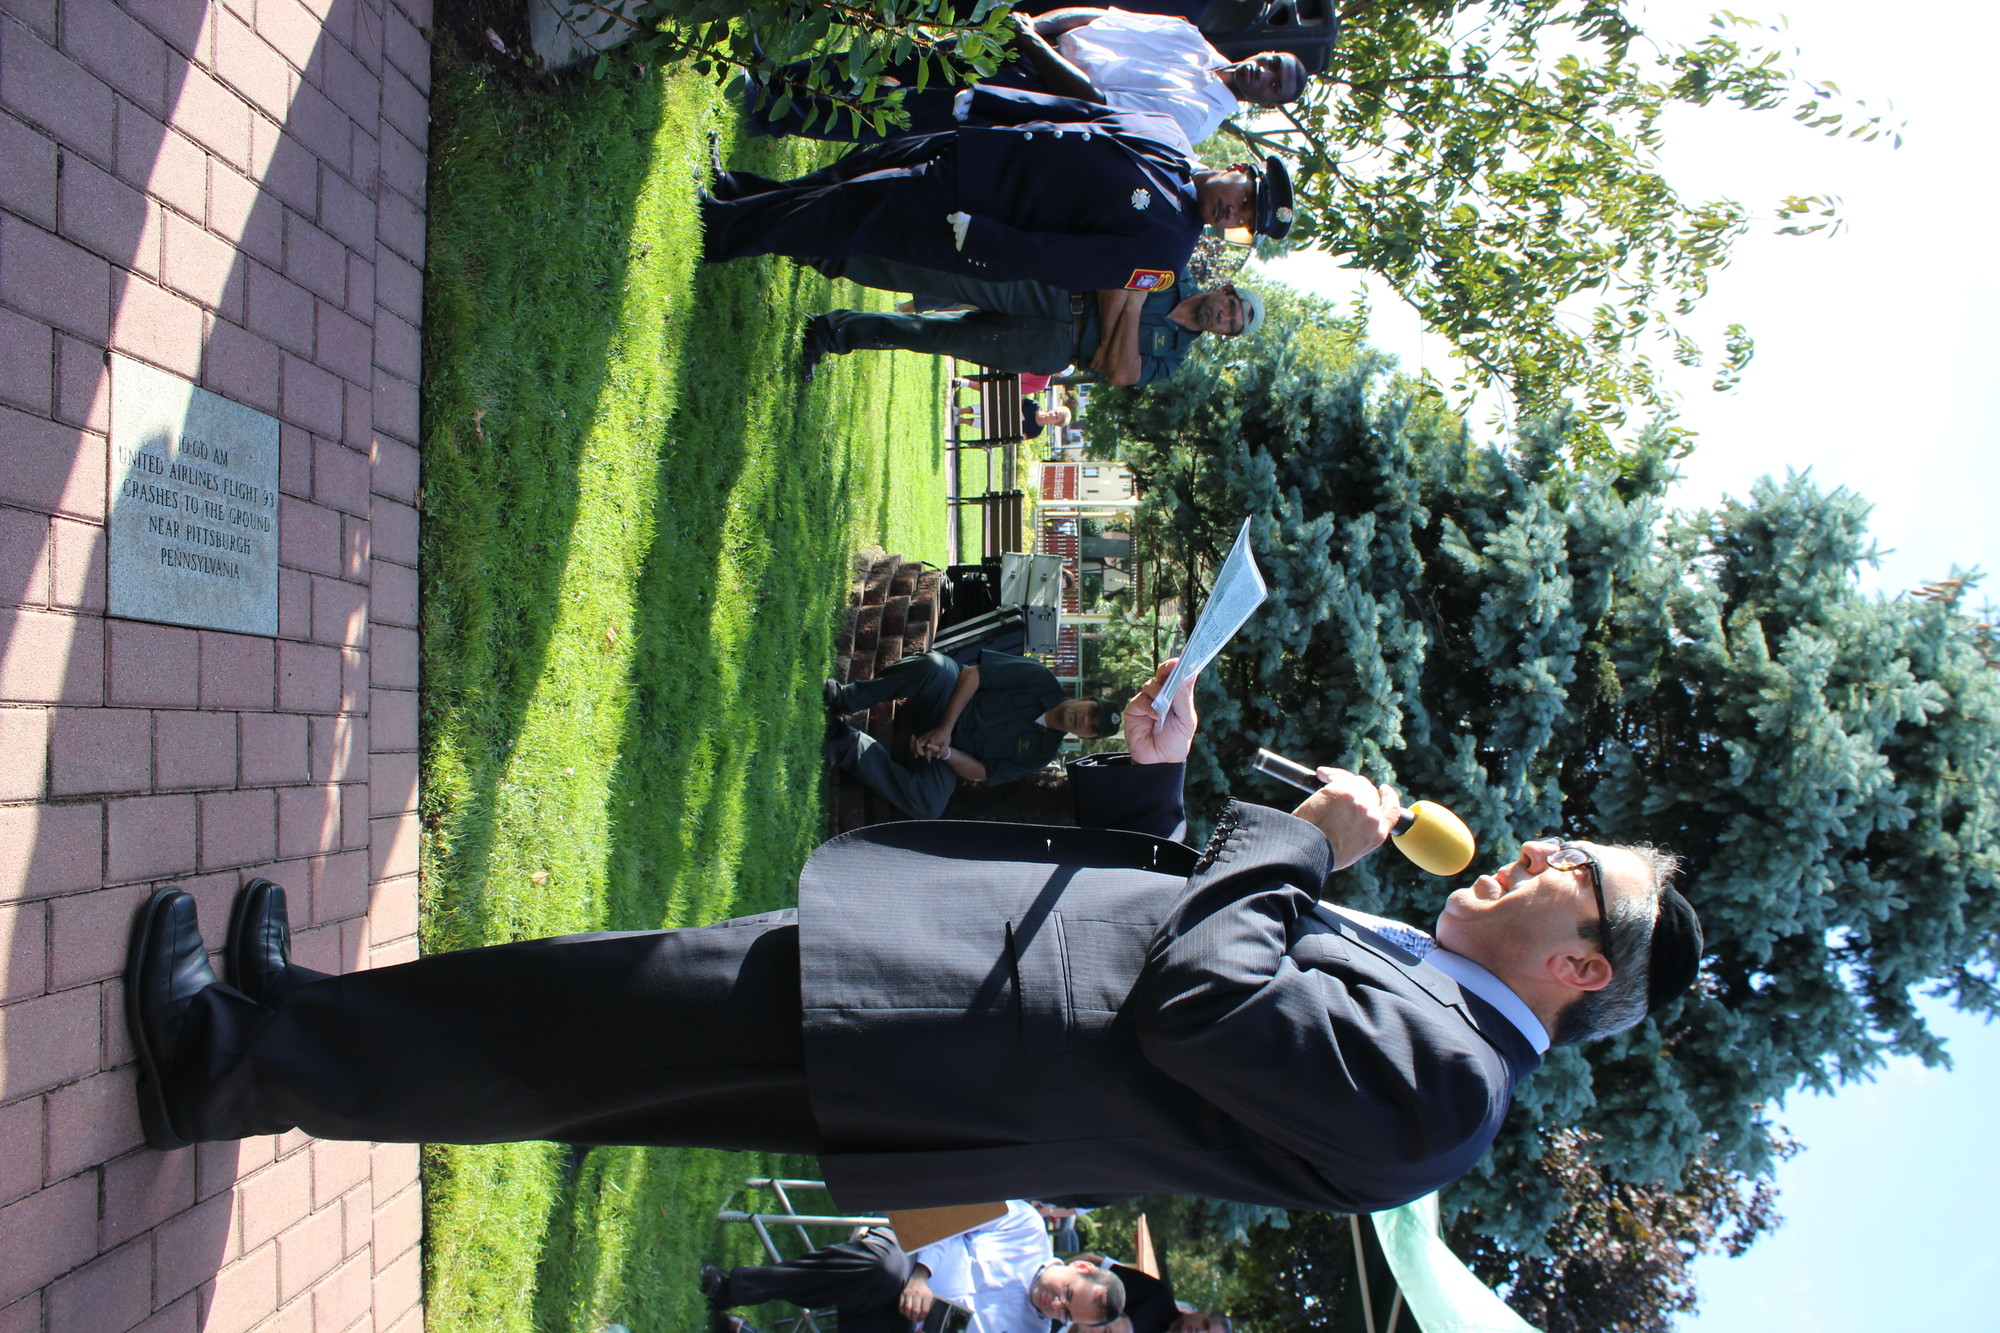 Village of Cedarhurst Trustee Israel Wasser read a memorial granite marker during the 9/11 ceremony held at Andrew J. Parise Park in Cedarhurst on Sept. 11.